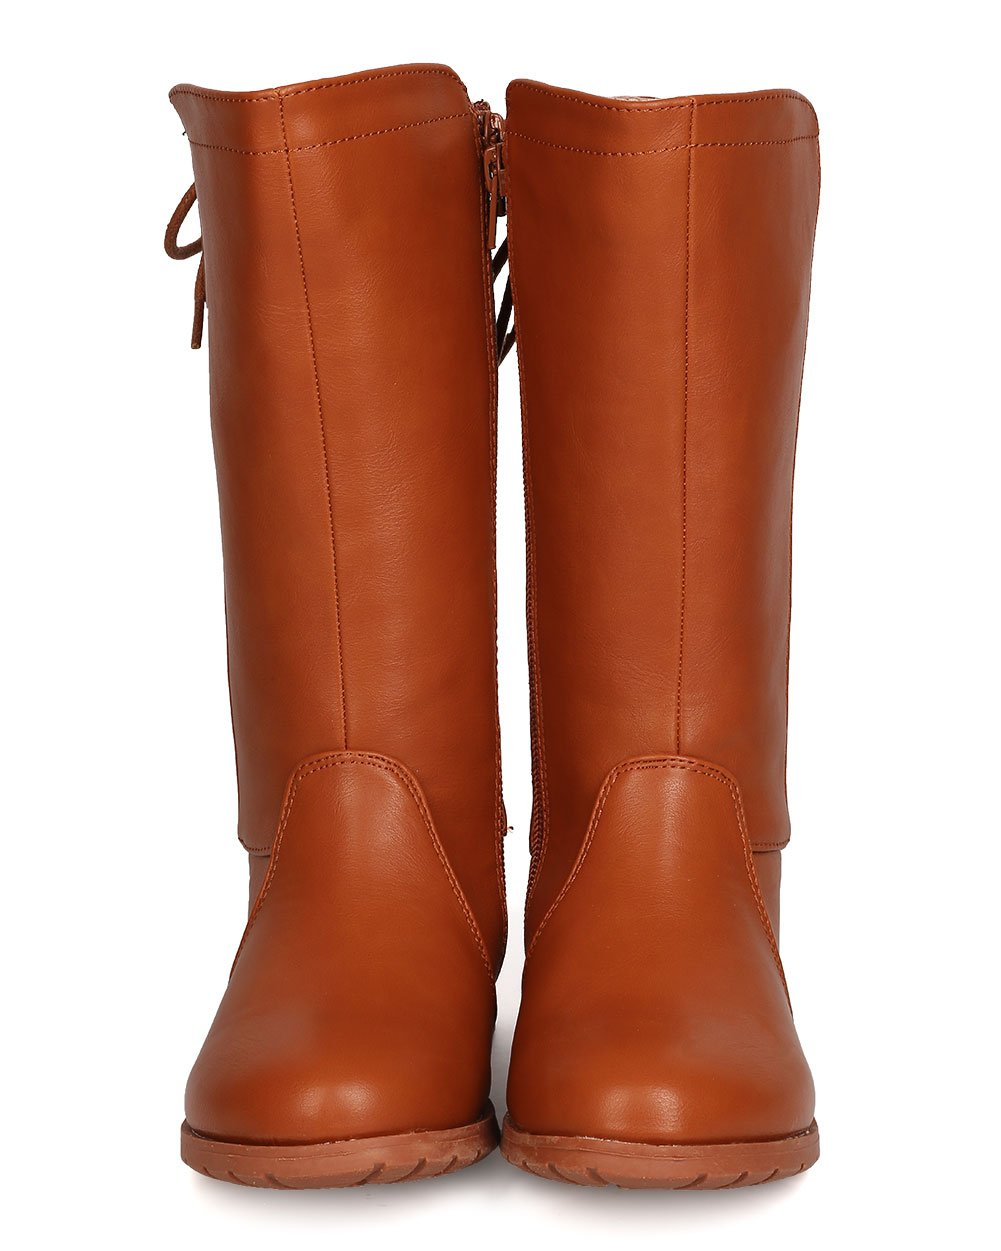 Girls Leatherette Back Lace Up Tall Riding Boot GB45 - Cognac (Size: Big Kid 3) by Little Angel (Image #4)